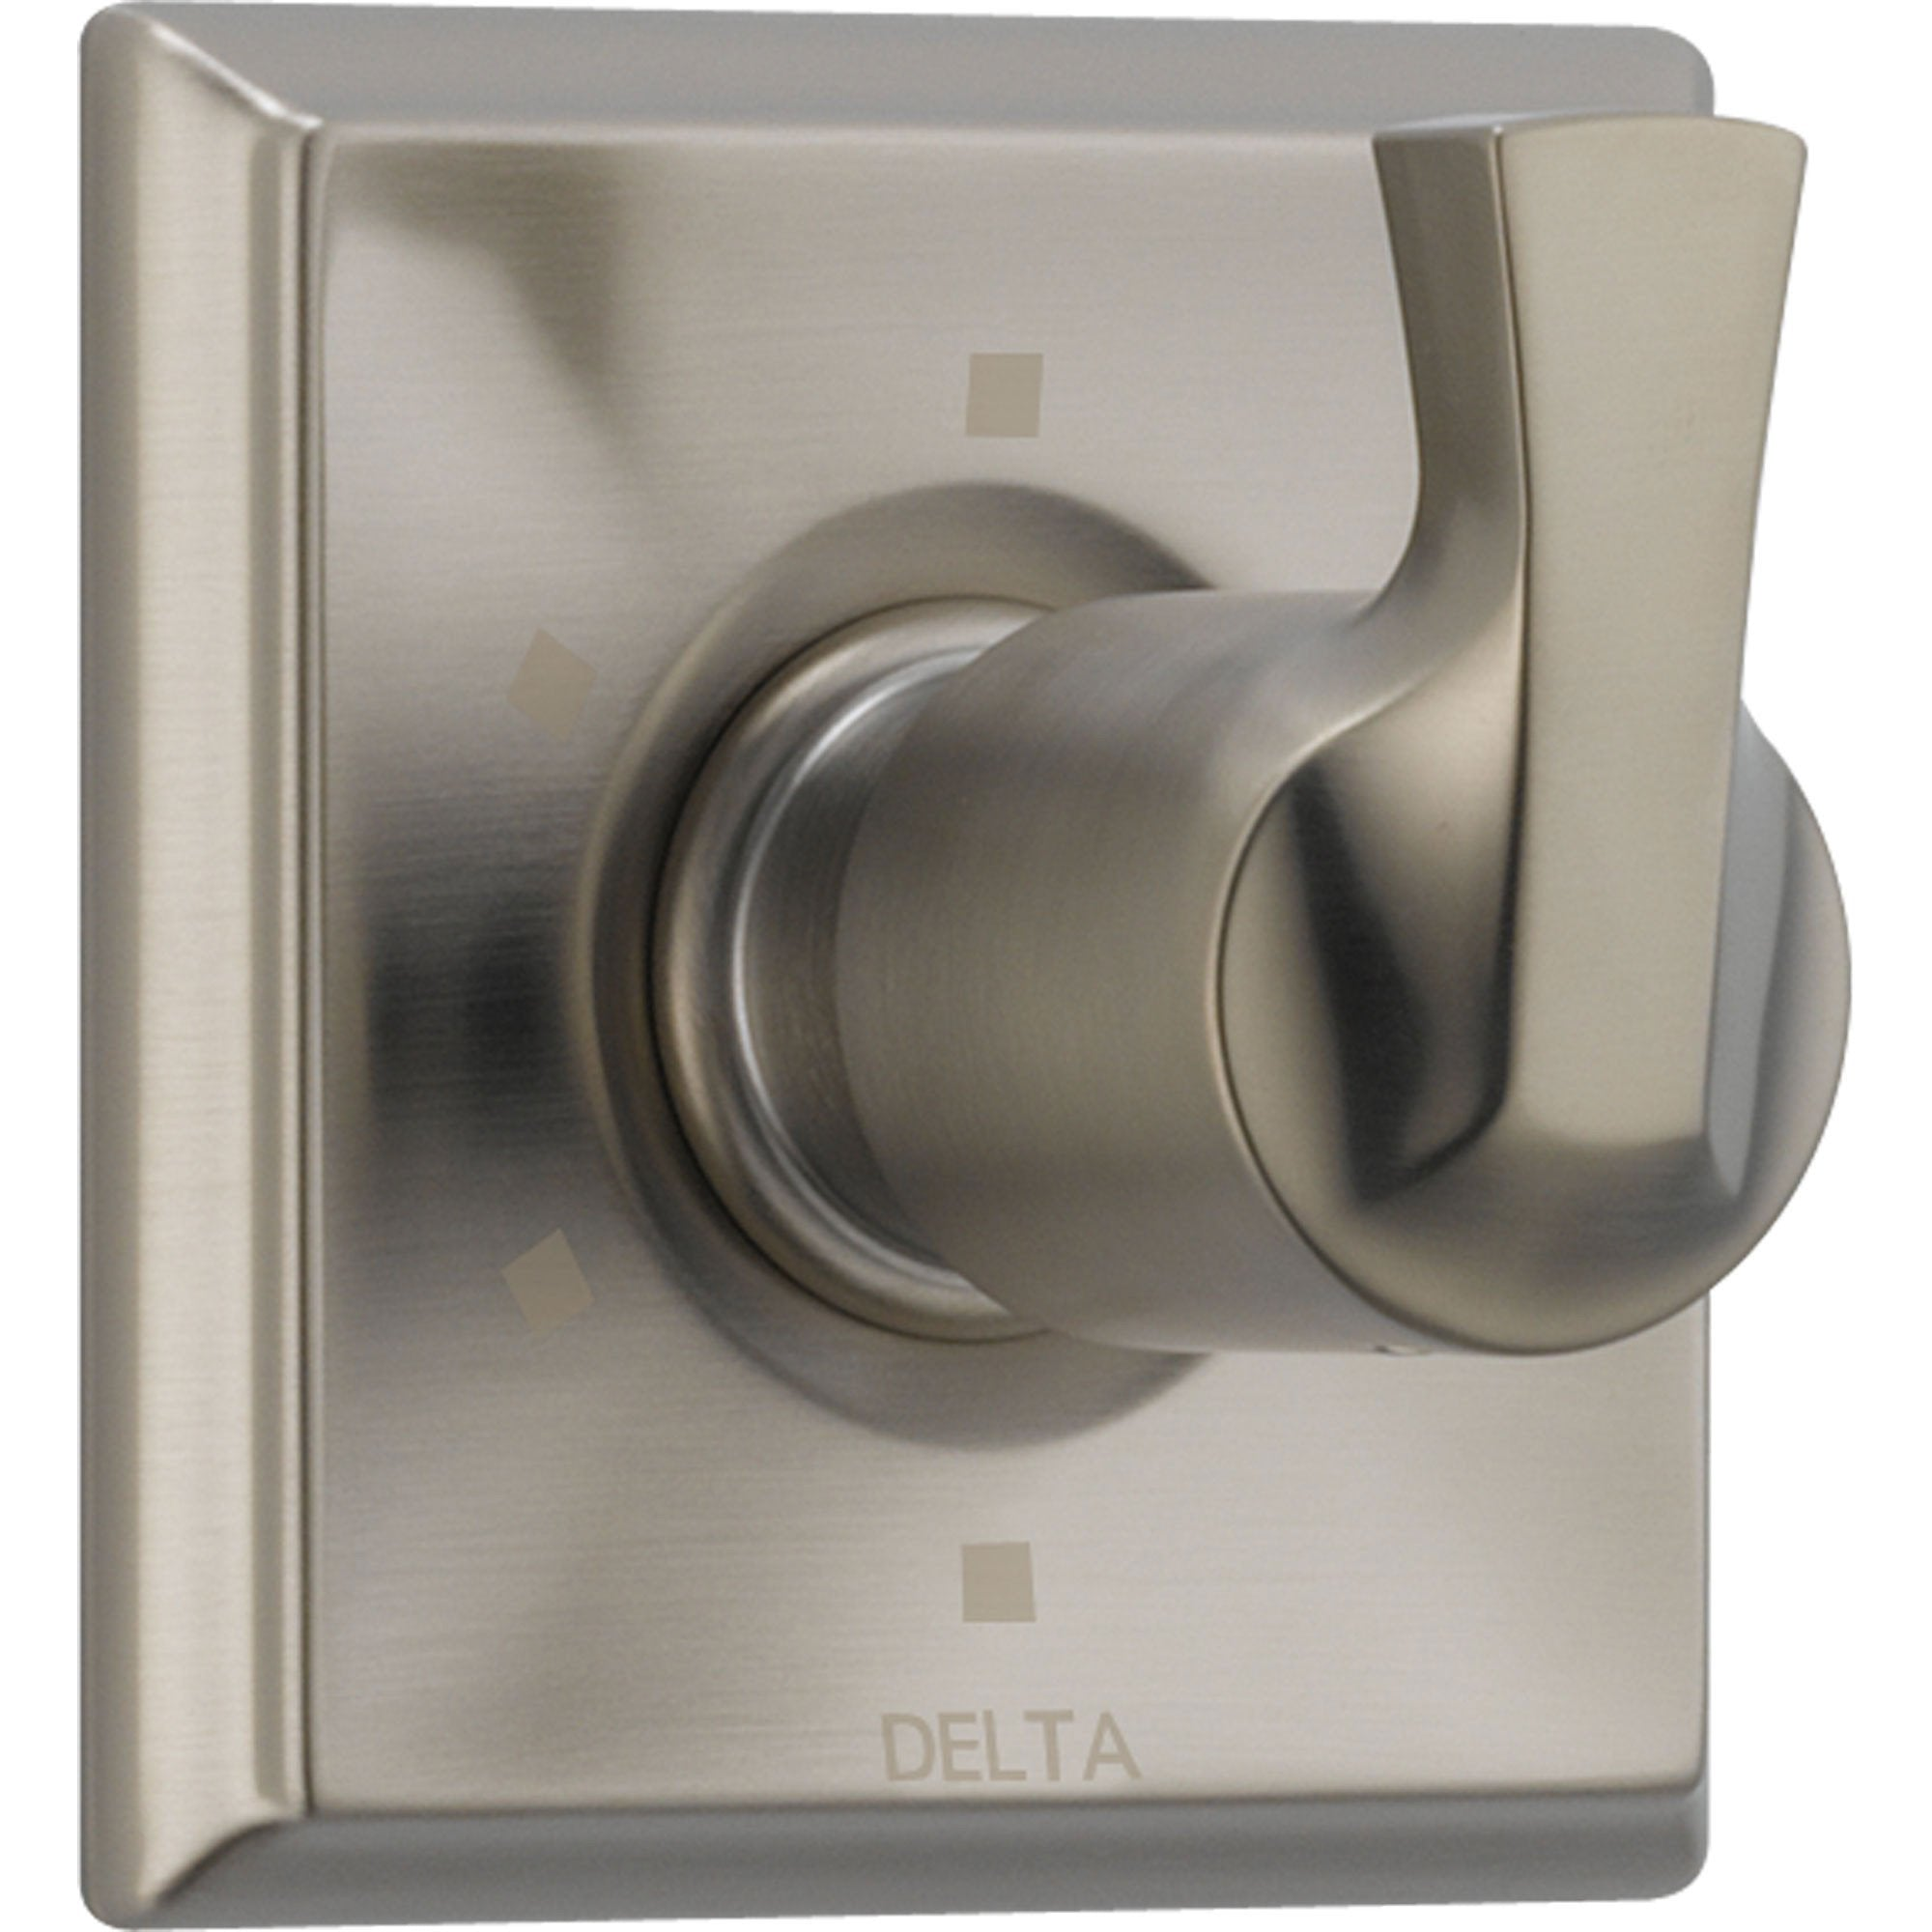 Delta 6-Setting Stainless Steel Finish 1-Handle Shower Diverter with Valve D150V